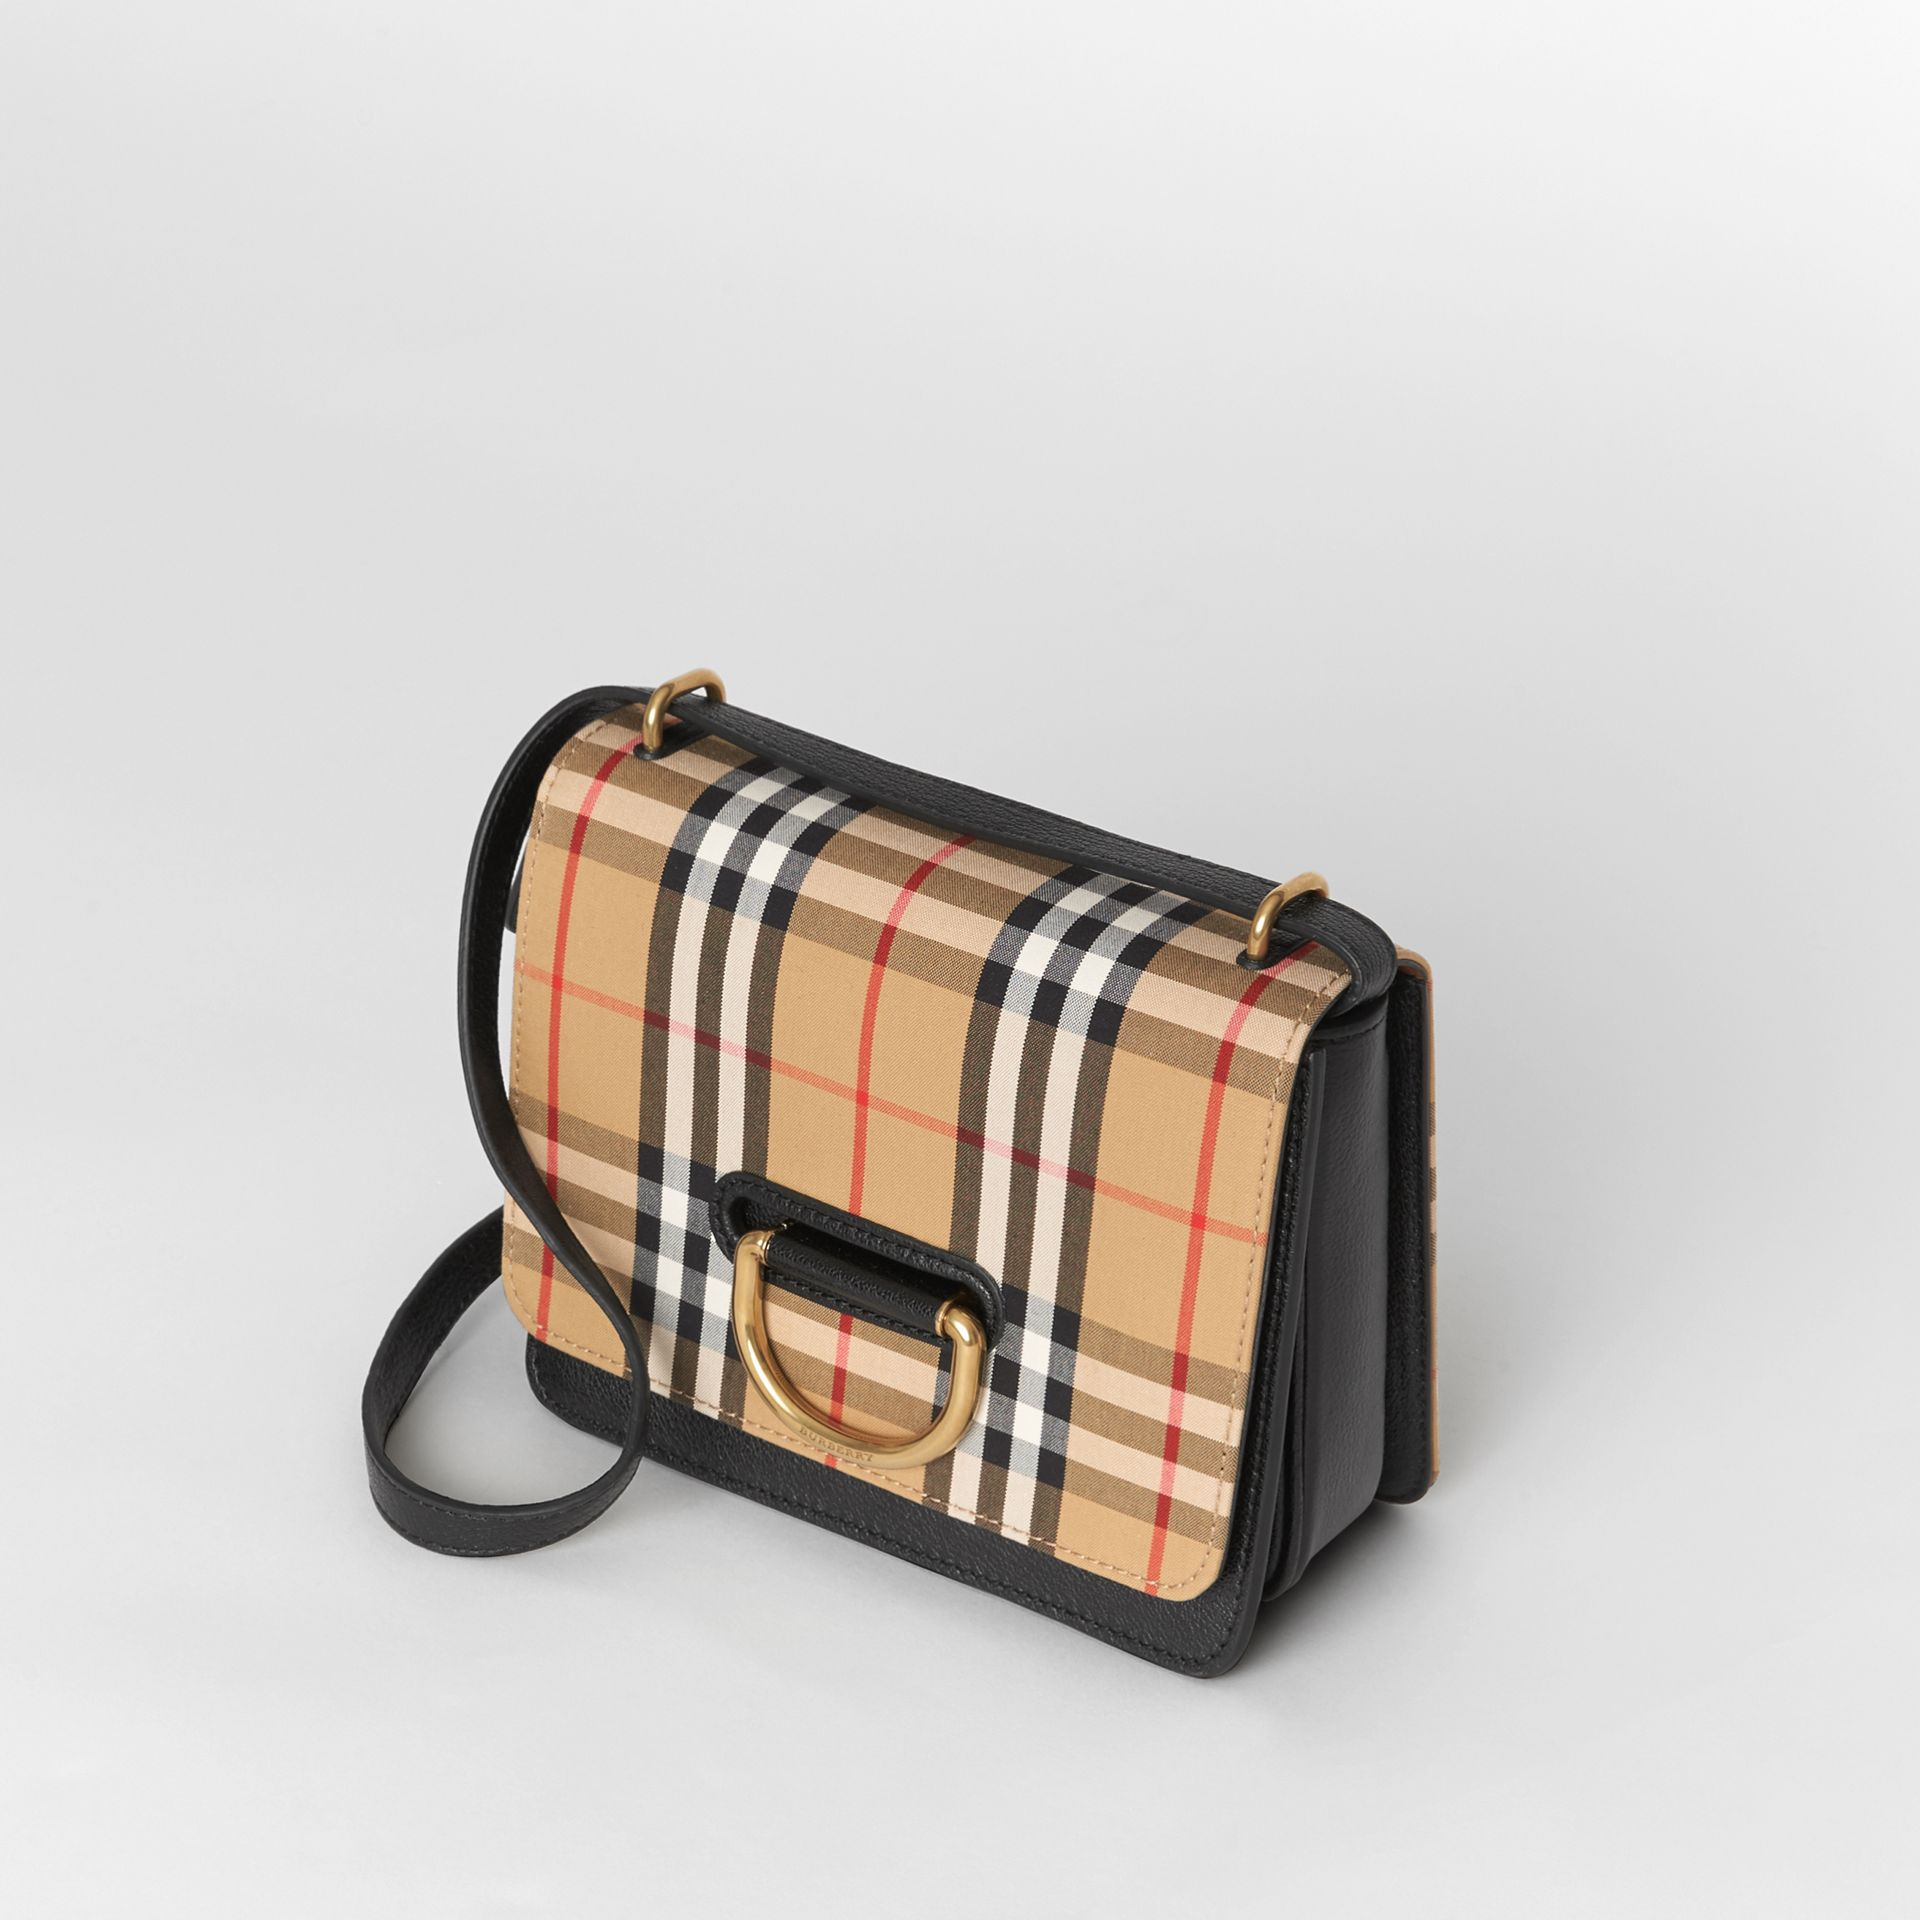 The Small Vintage Check and Leather D-ring Bag in Black antique Yellow - 56301dd52bb6c